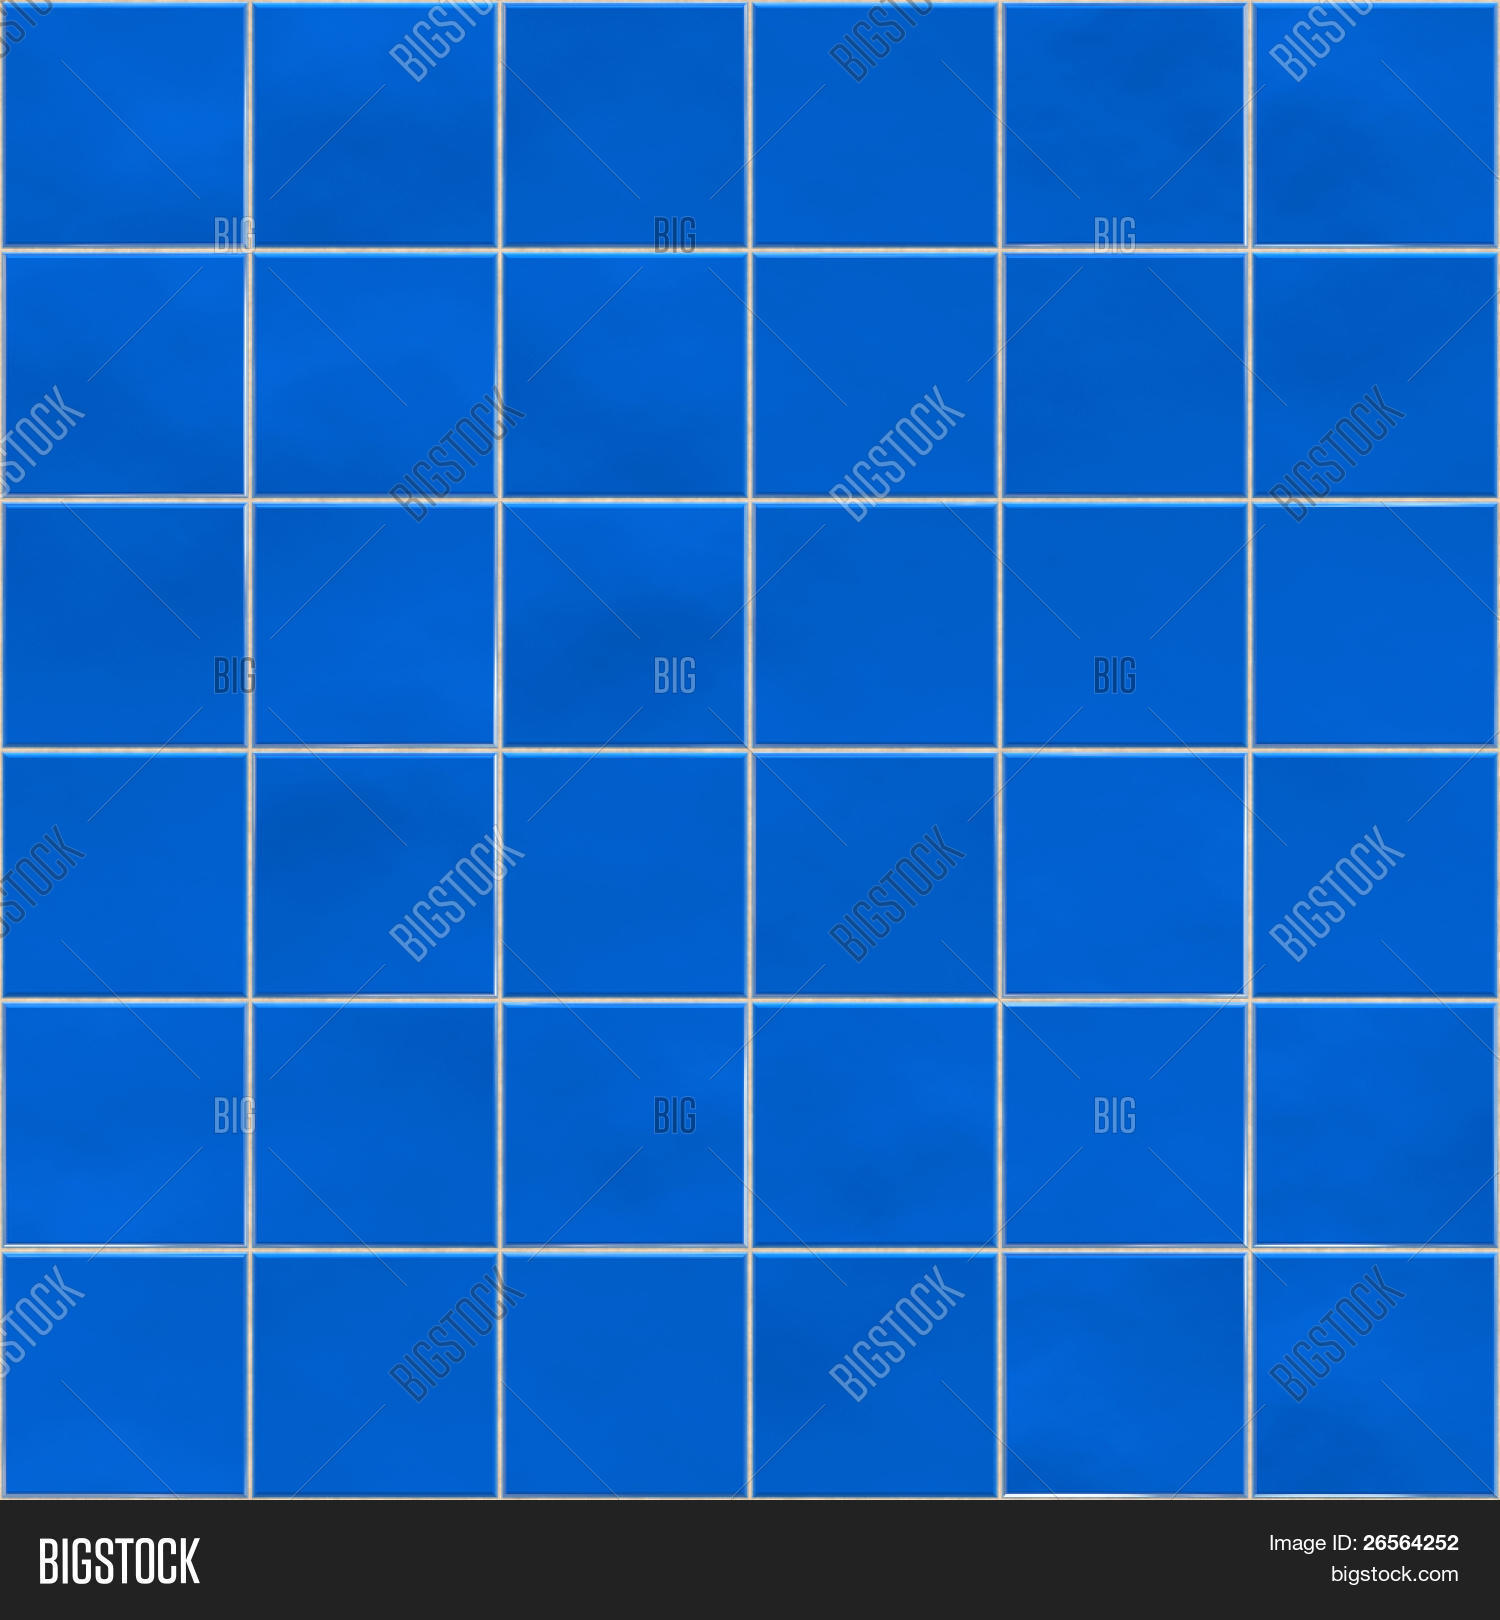 kitchen blue tiles texture. Blue Tiles Texture Background, Kitchen, Bathroom Or Pool Concept Kitchen